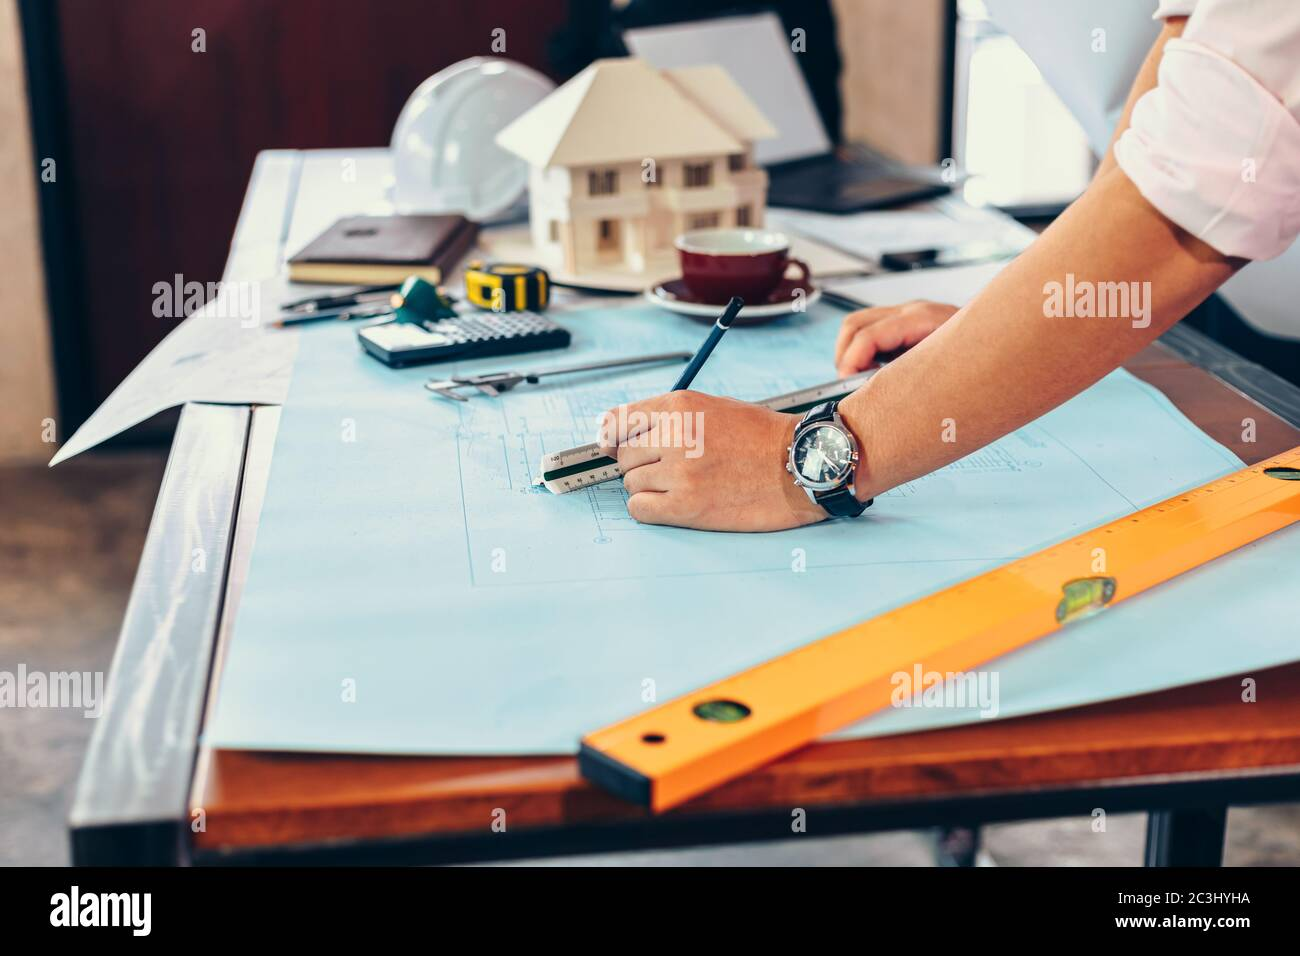 engineers holding a pen pointing to a building and  drawing outlay construction plan as guide for builders with details Stock Photo